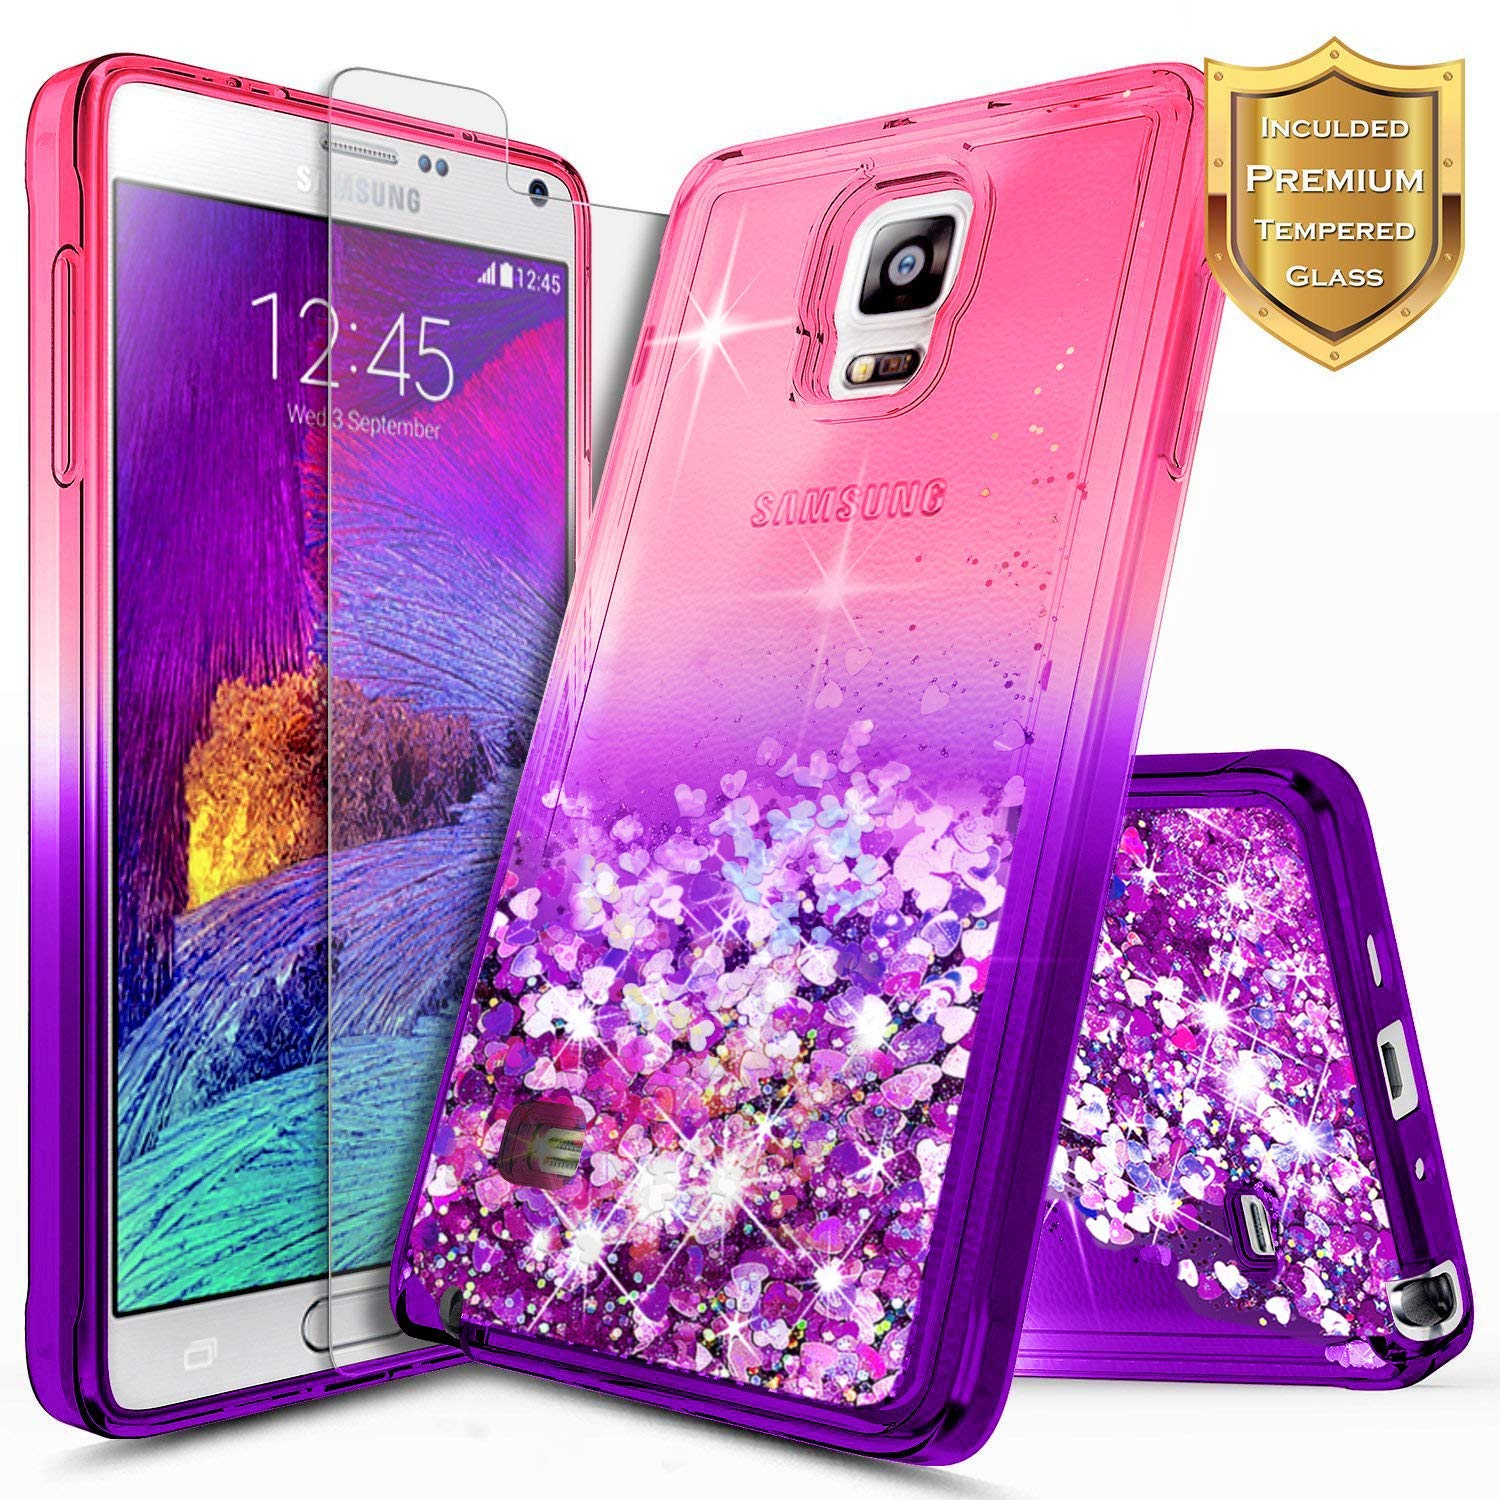 Galaxy Note 4 Case w/[Tempered Glass Screen Protector], NageBee Glitter Liquid Quicksand Waterfall Floating Flowing Sparkle Shiny Bling Girls Cute Case for Samsung Galaxy Note 4 -Pink/Purple